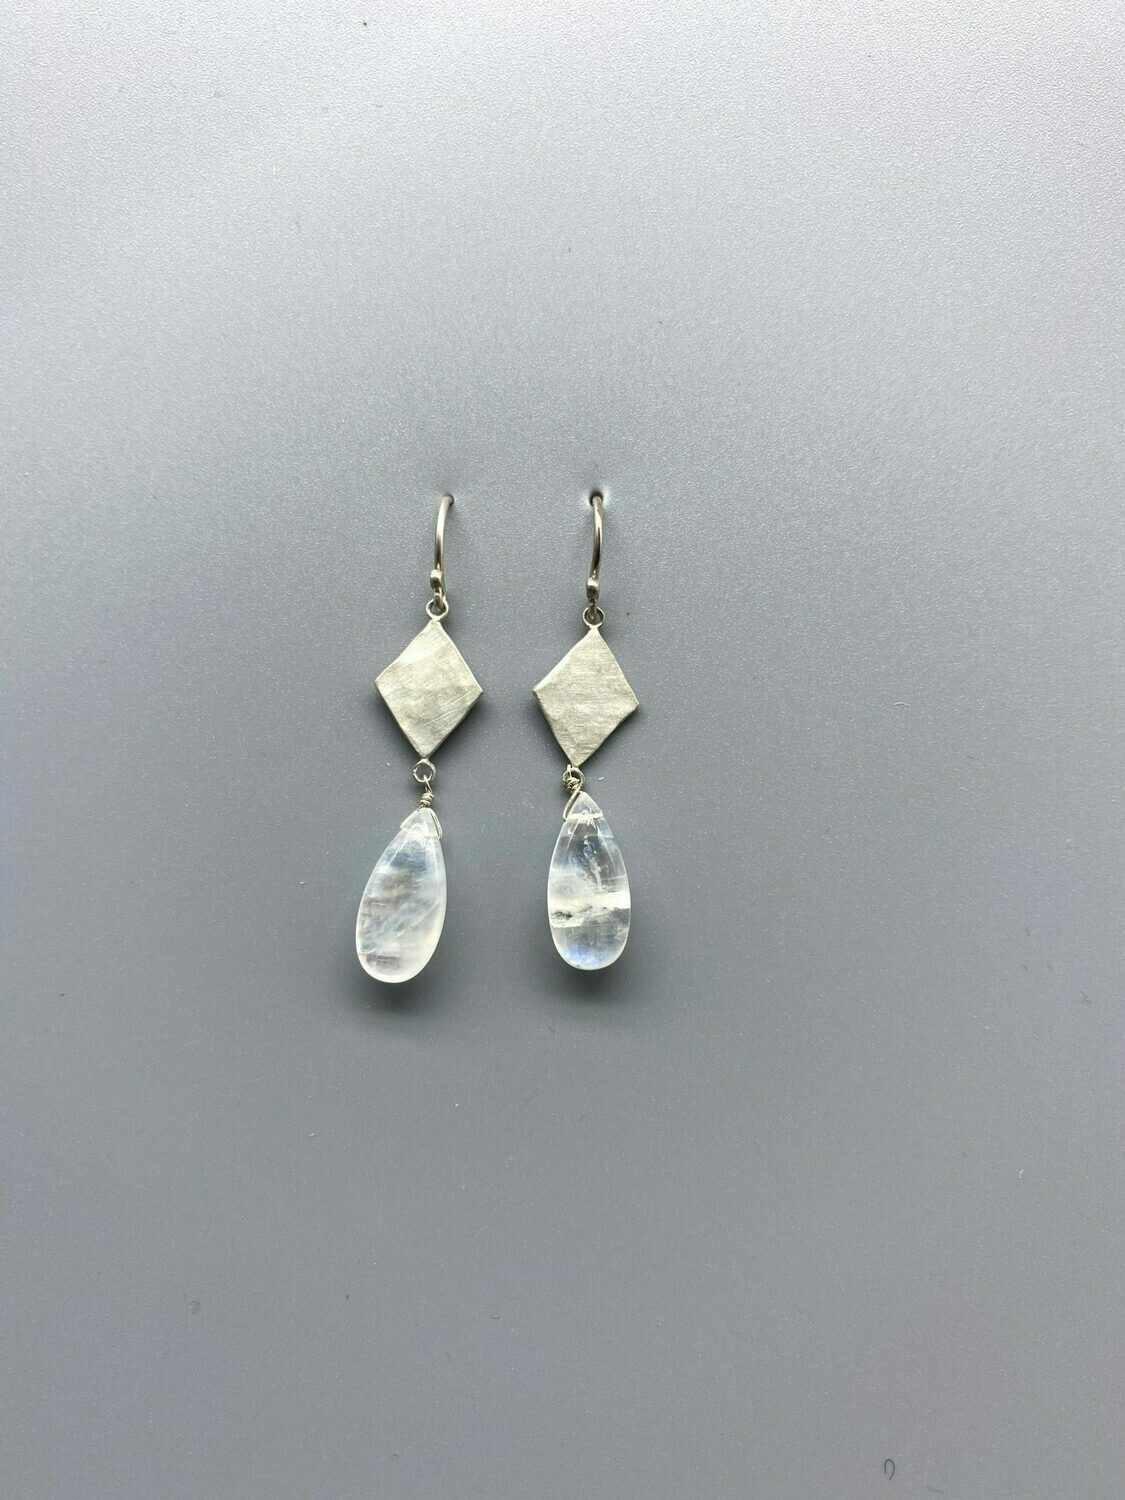 Diamond Shaped Sterling Silver Charm, Moonstone Teardrop Earring - Ananda Khalsa, Northampton MA